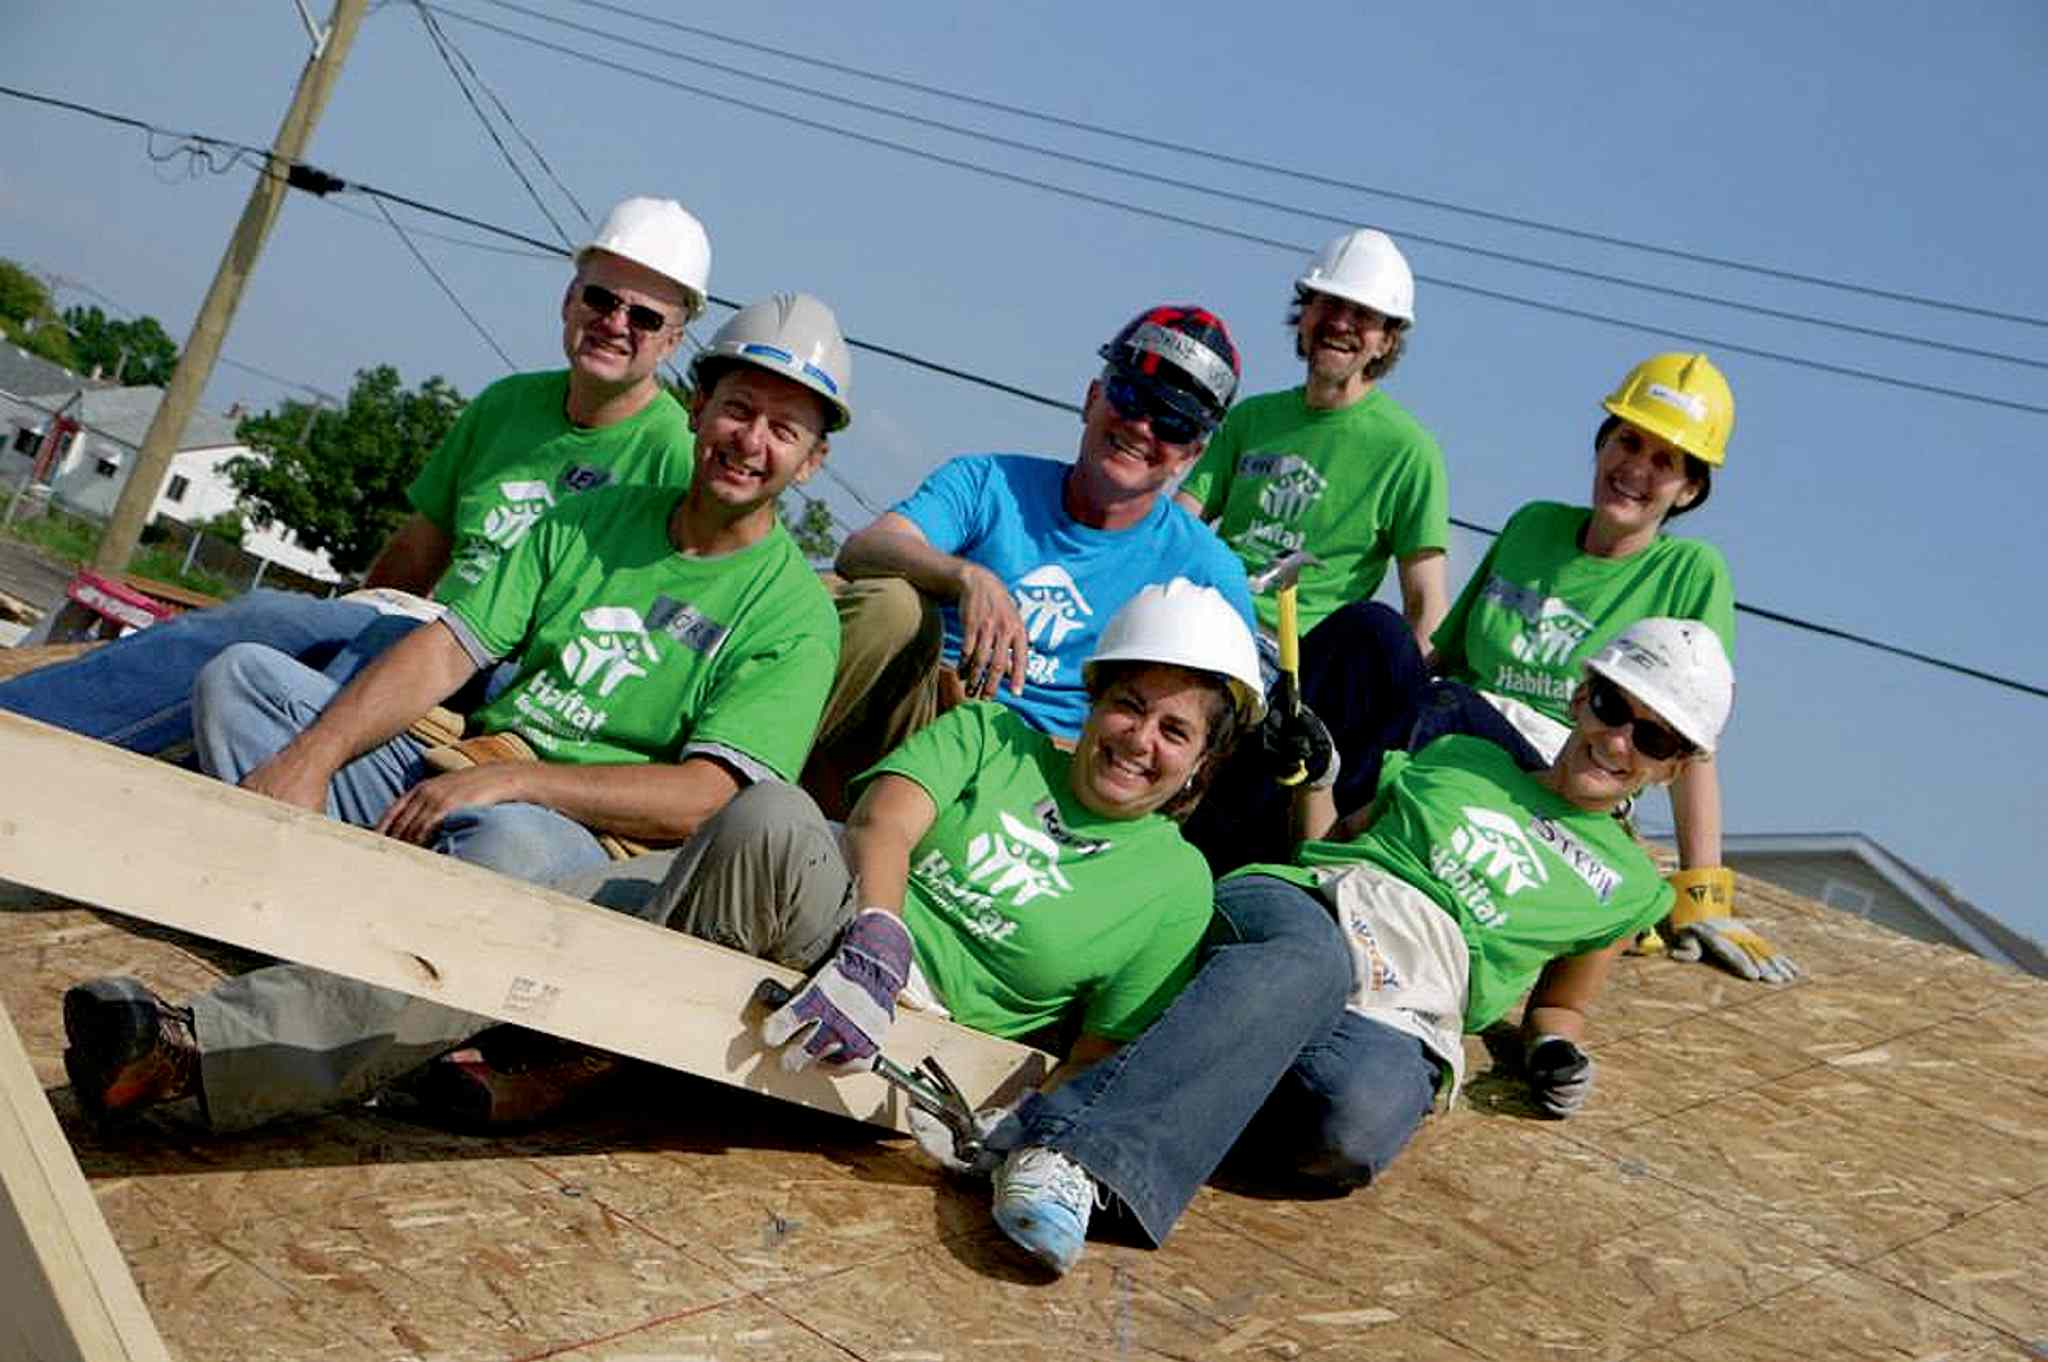 Stephanie Staples (right, white hardhat) and her Habitat for Humanity build team thoroughly enjoyed their day.